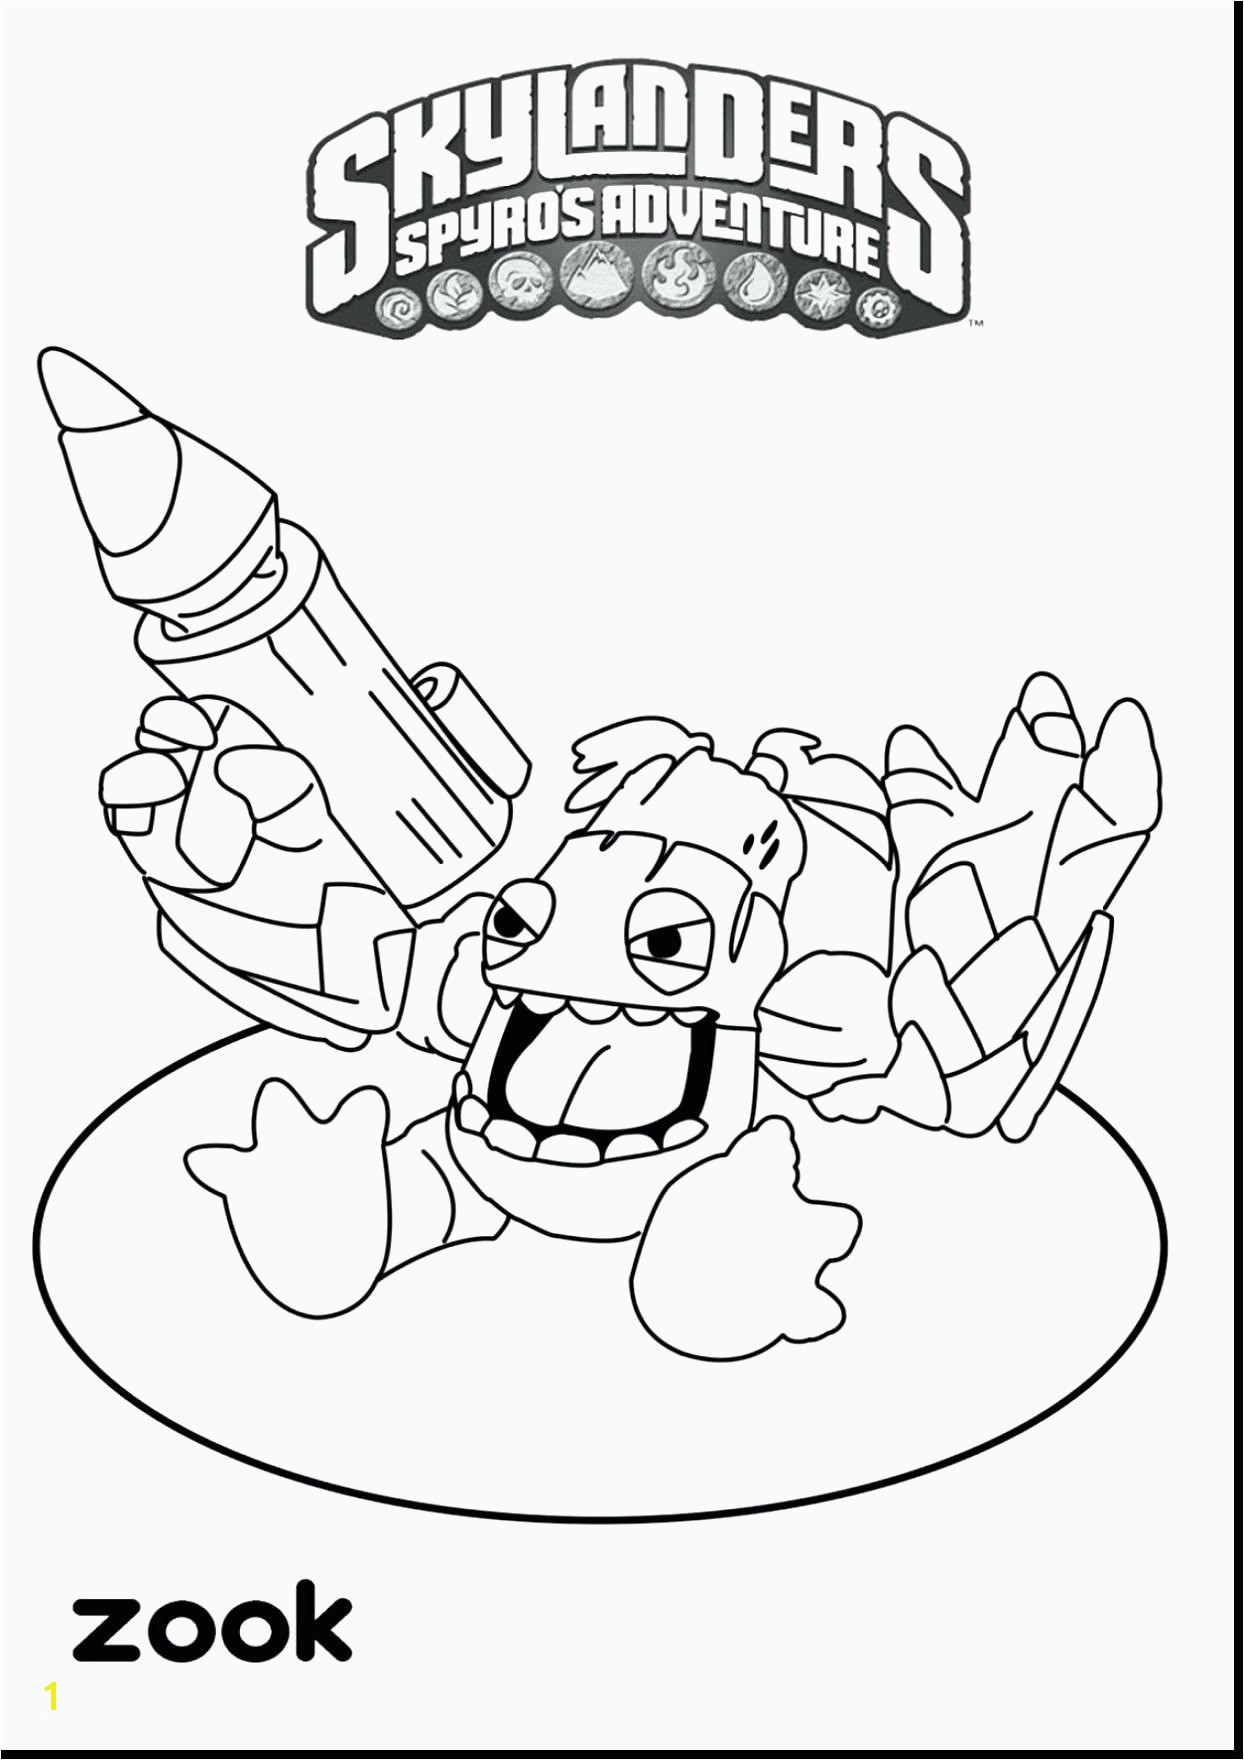 Truck Coloring Pages Skateboard Coloring Page Inspirational Cool Printable Coloring Pages